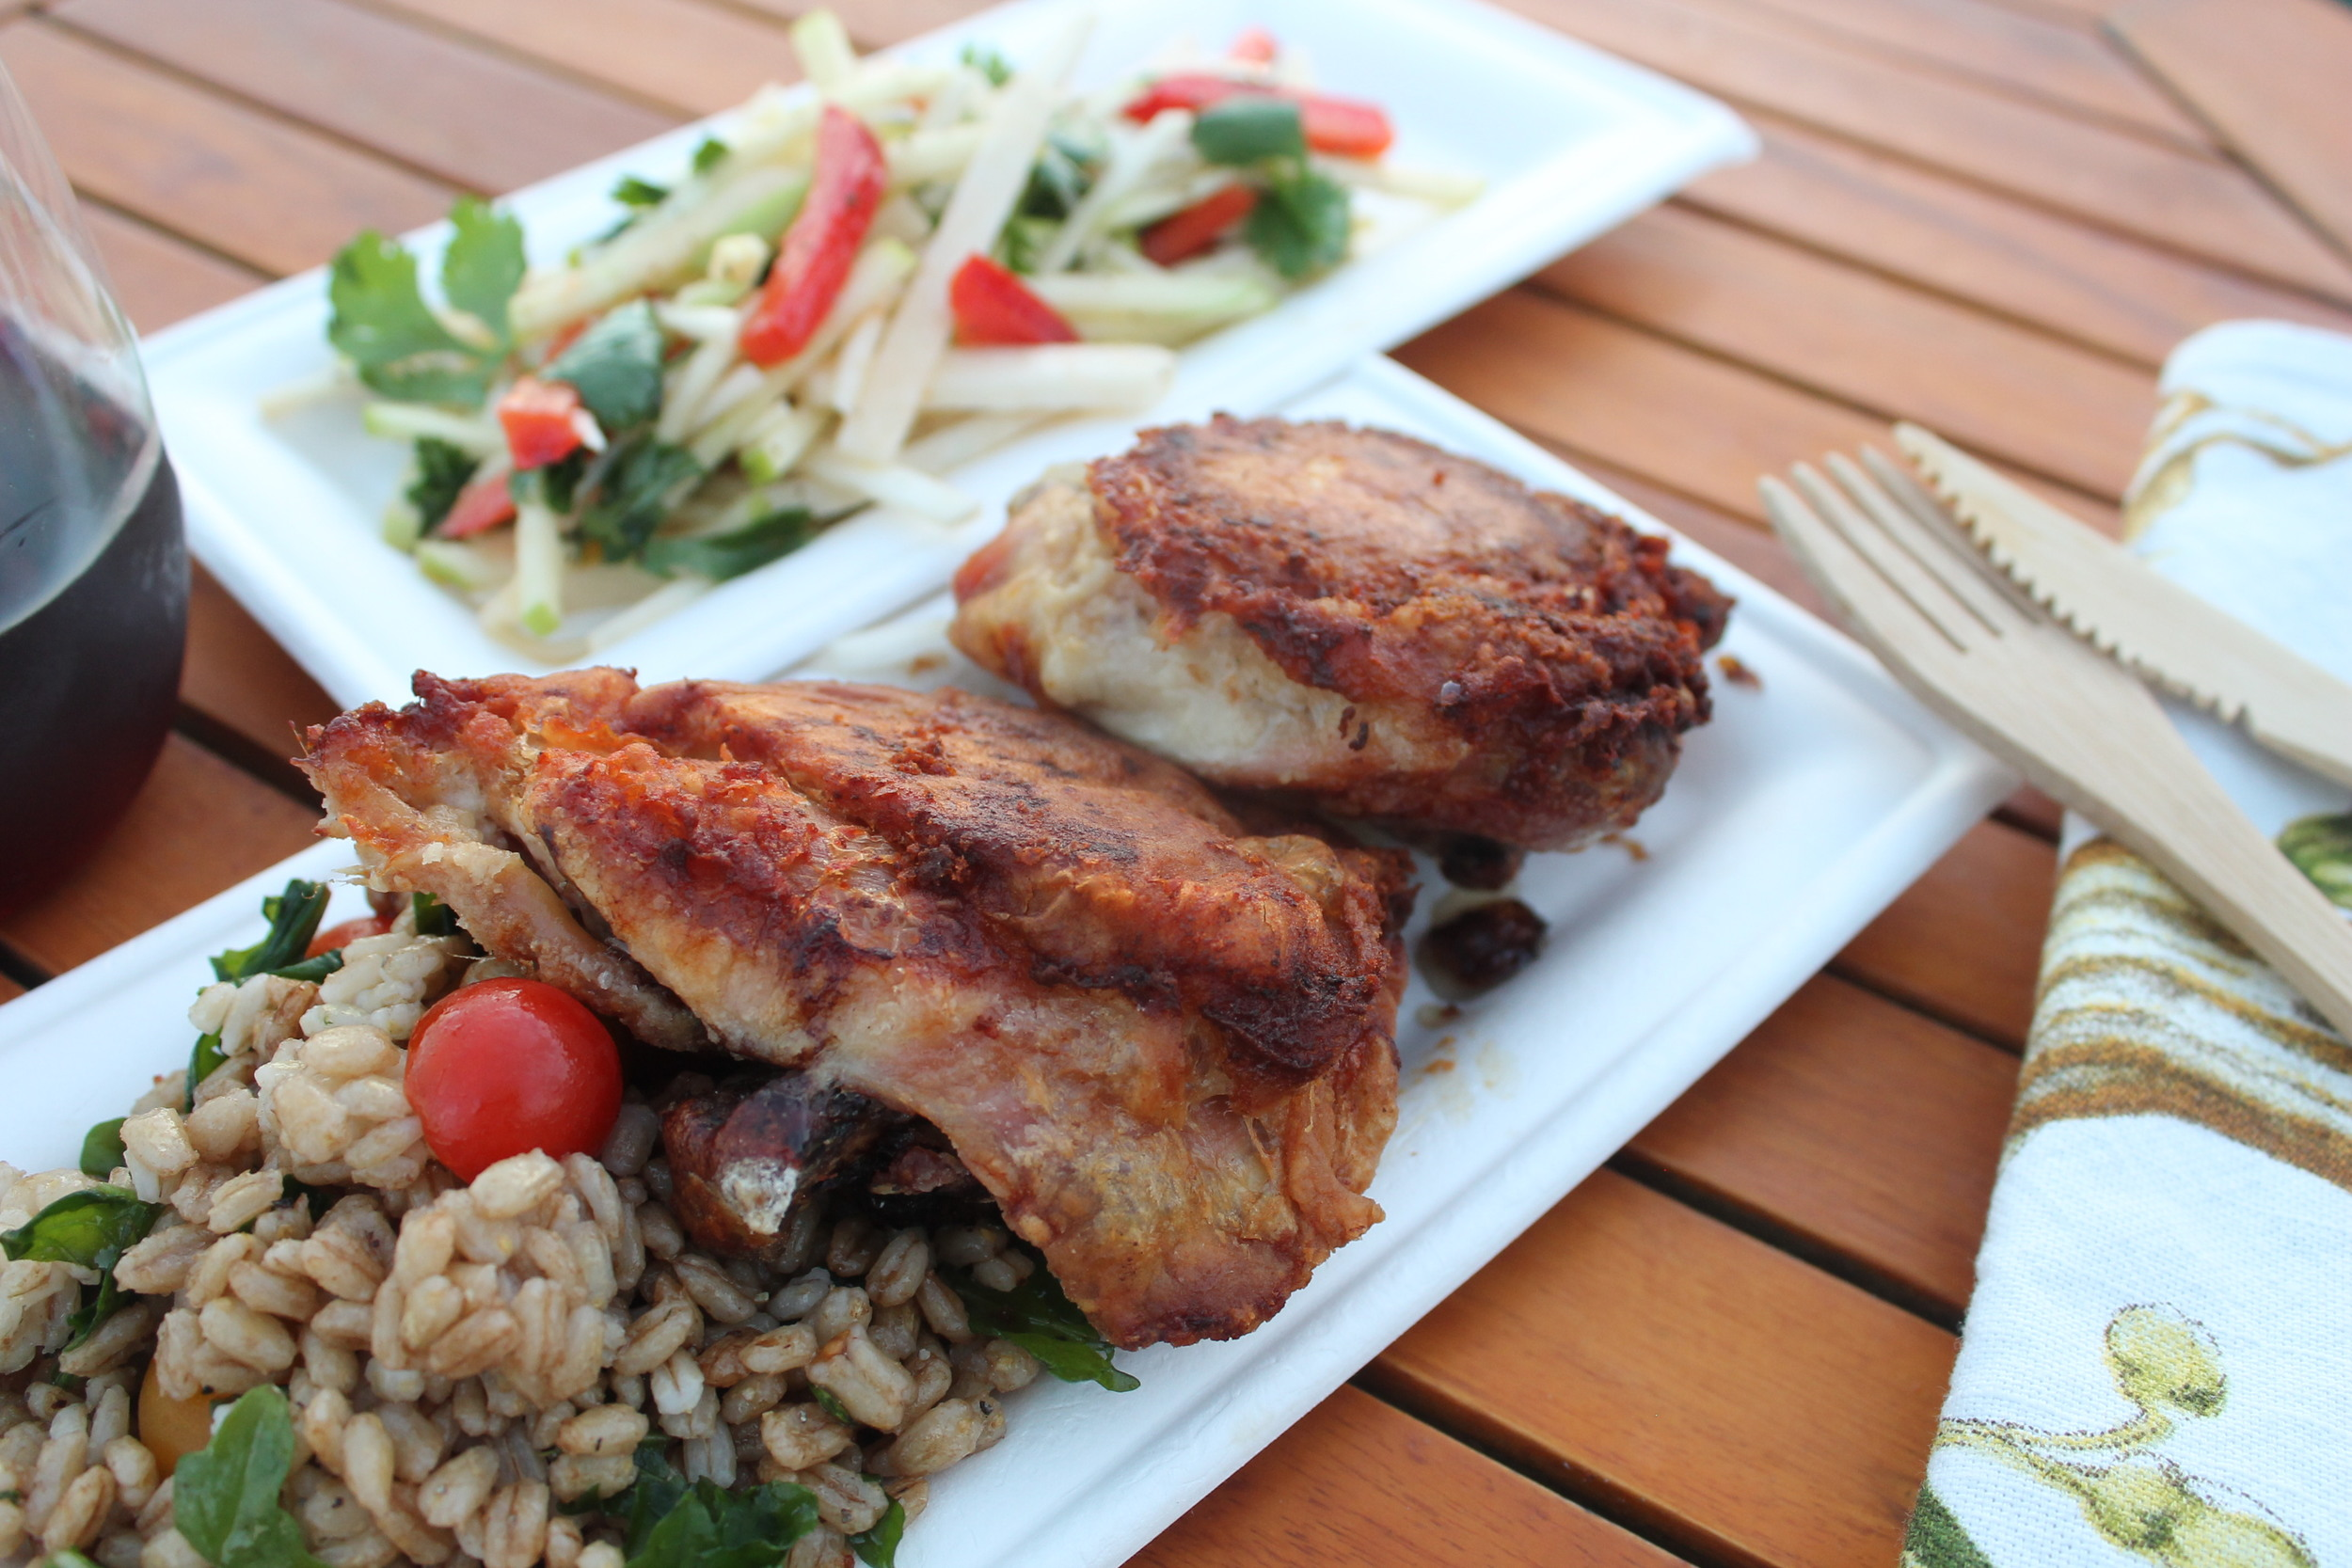 Oven Fried Chicken with Farro and Cherry Tomatoes Served with Jicama, Red Bell Pepper and Green Apple Slaw